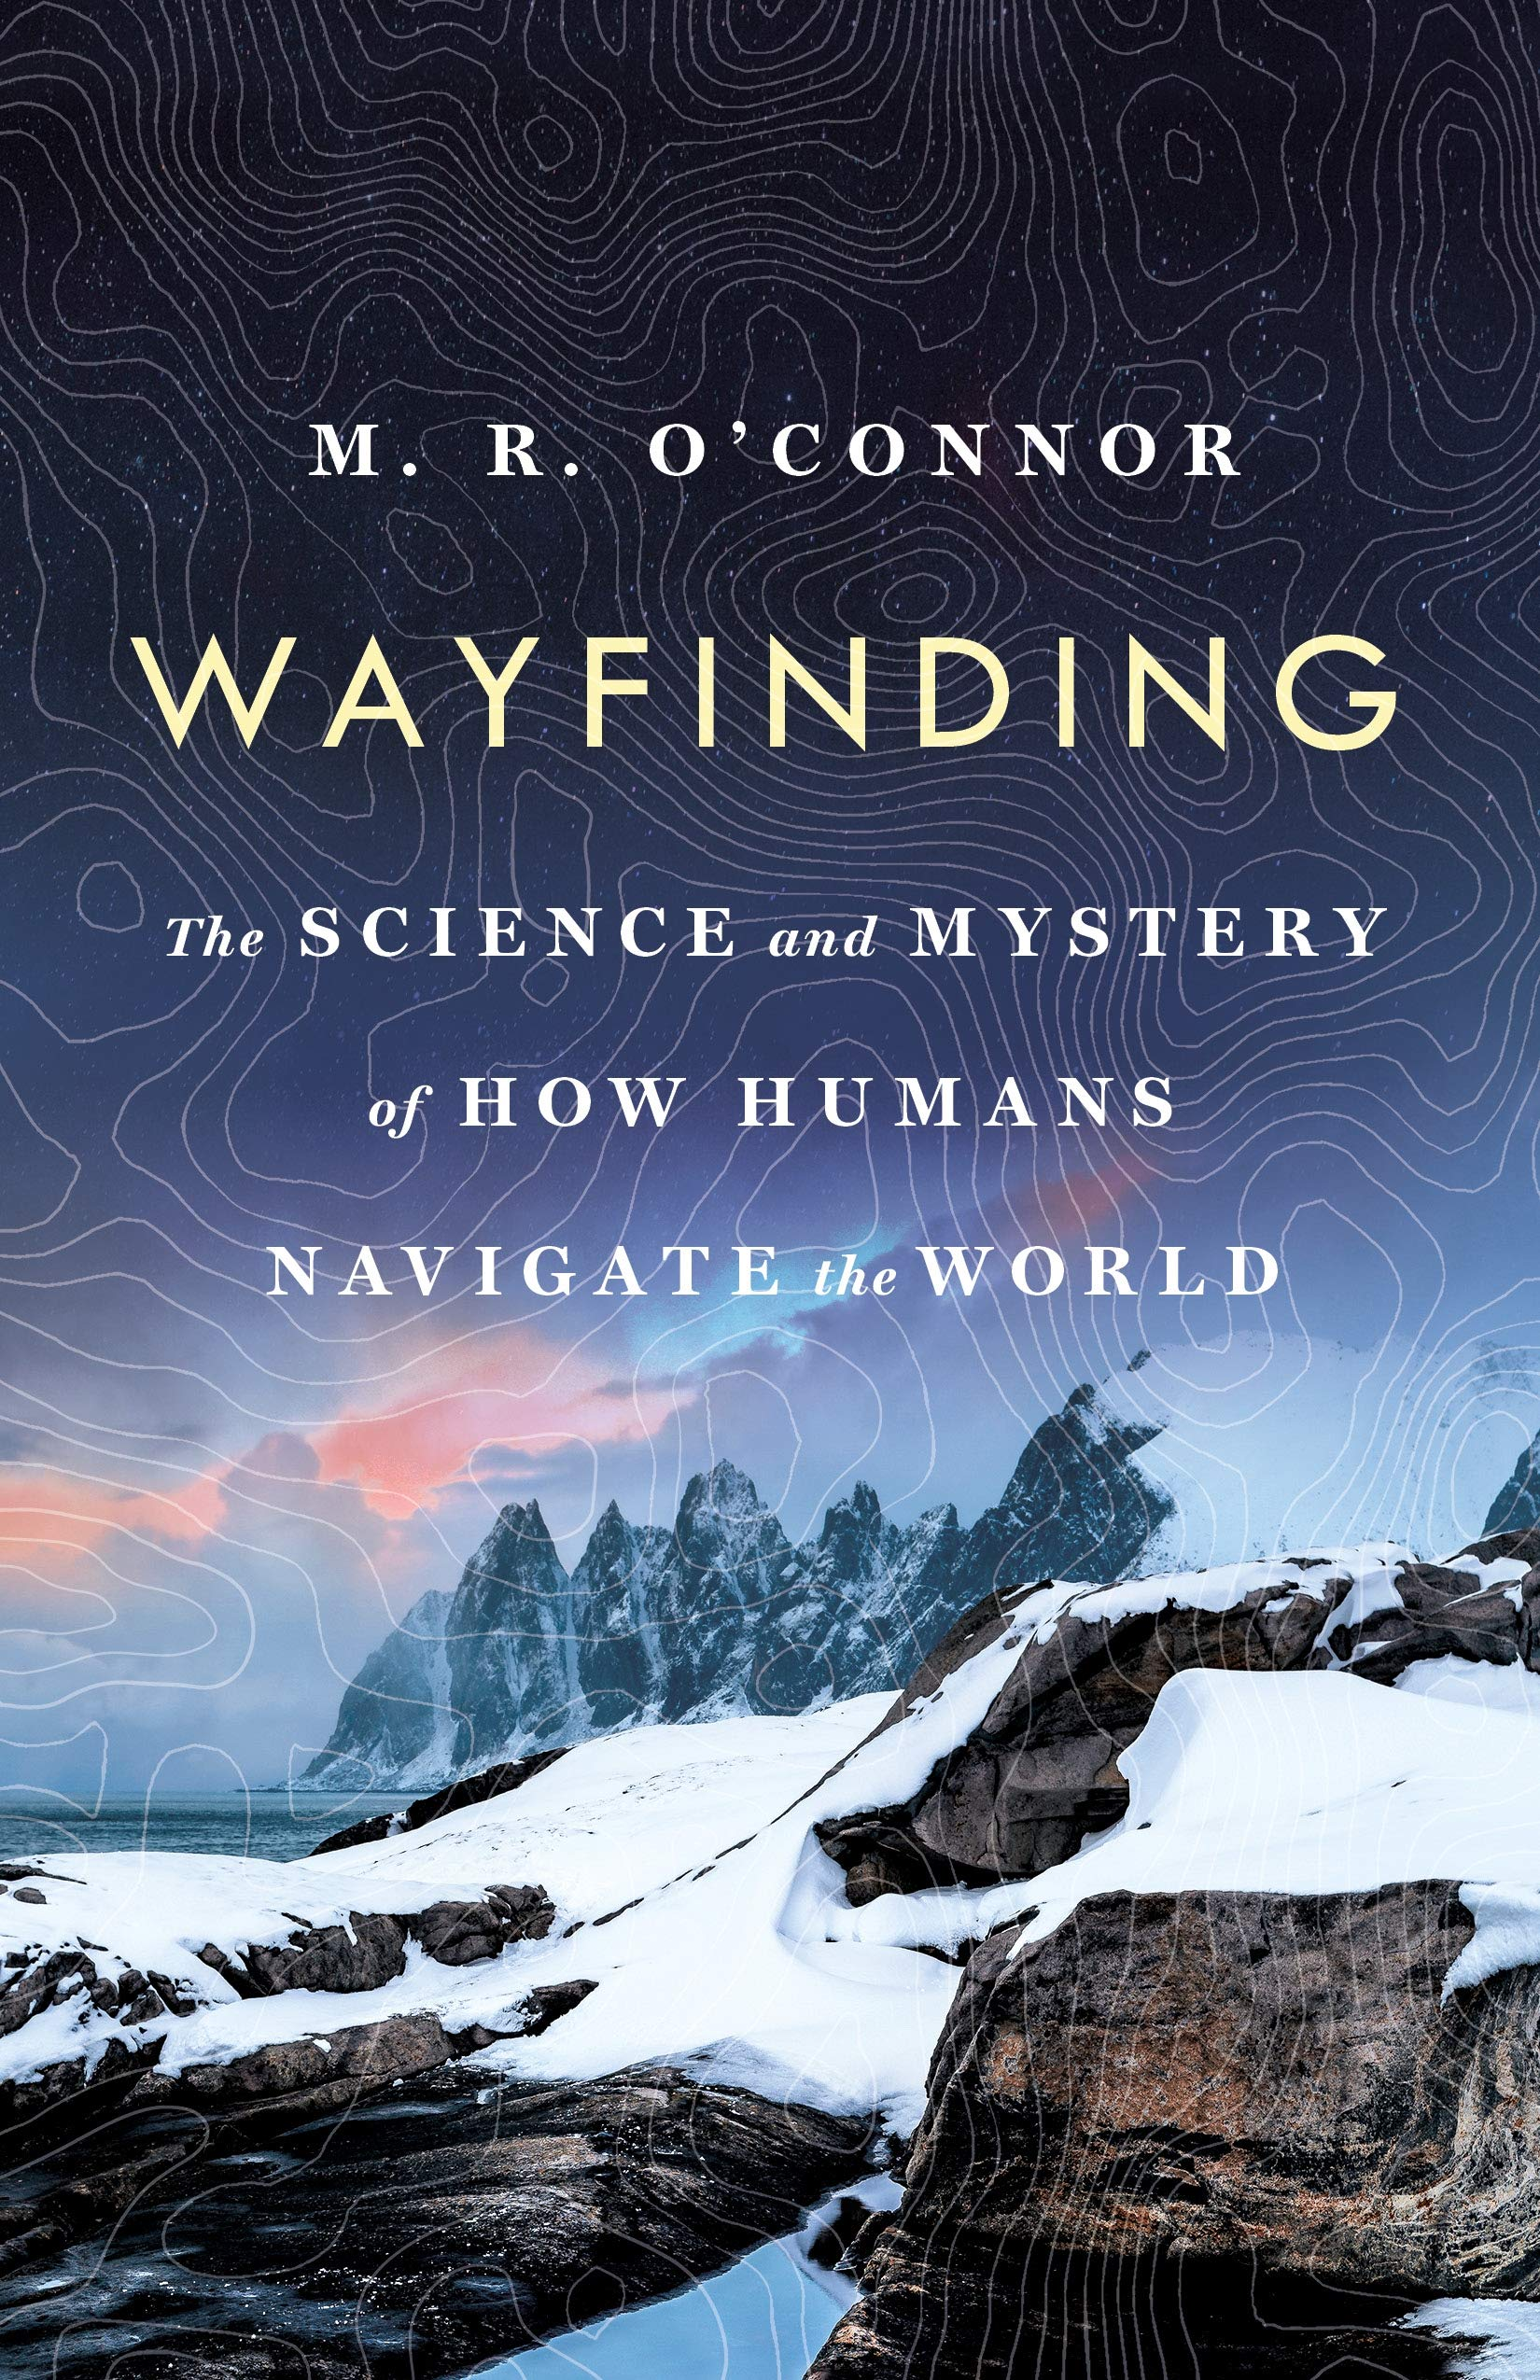 Wayfinding by M R O'connor book cover.